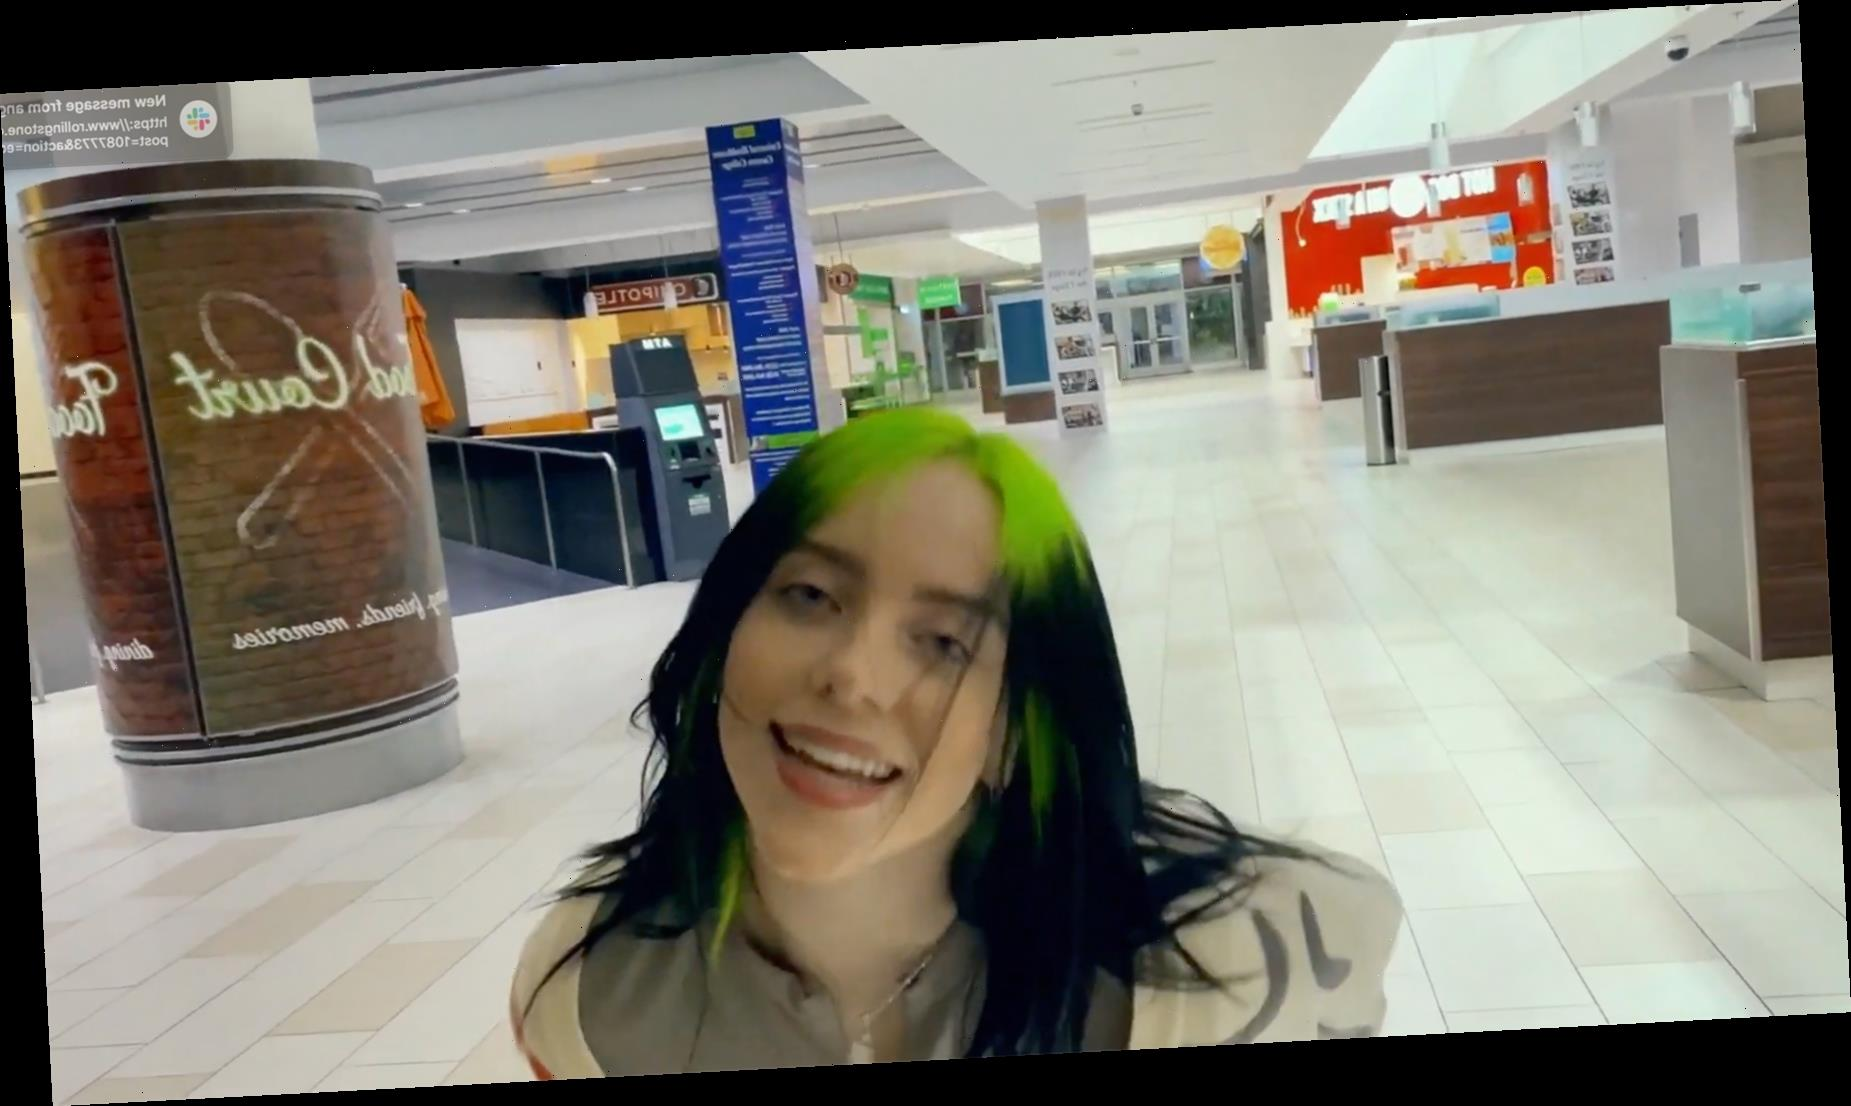 Billie Eilish Roams Deserted California Mall in 'Therefore I Am' Video